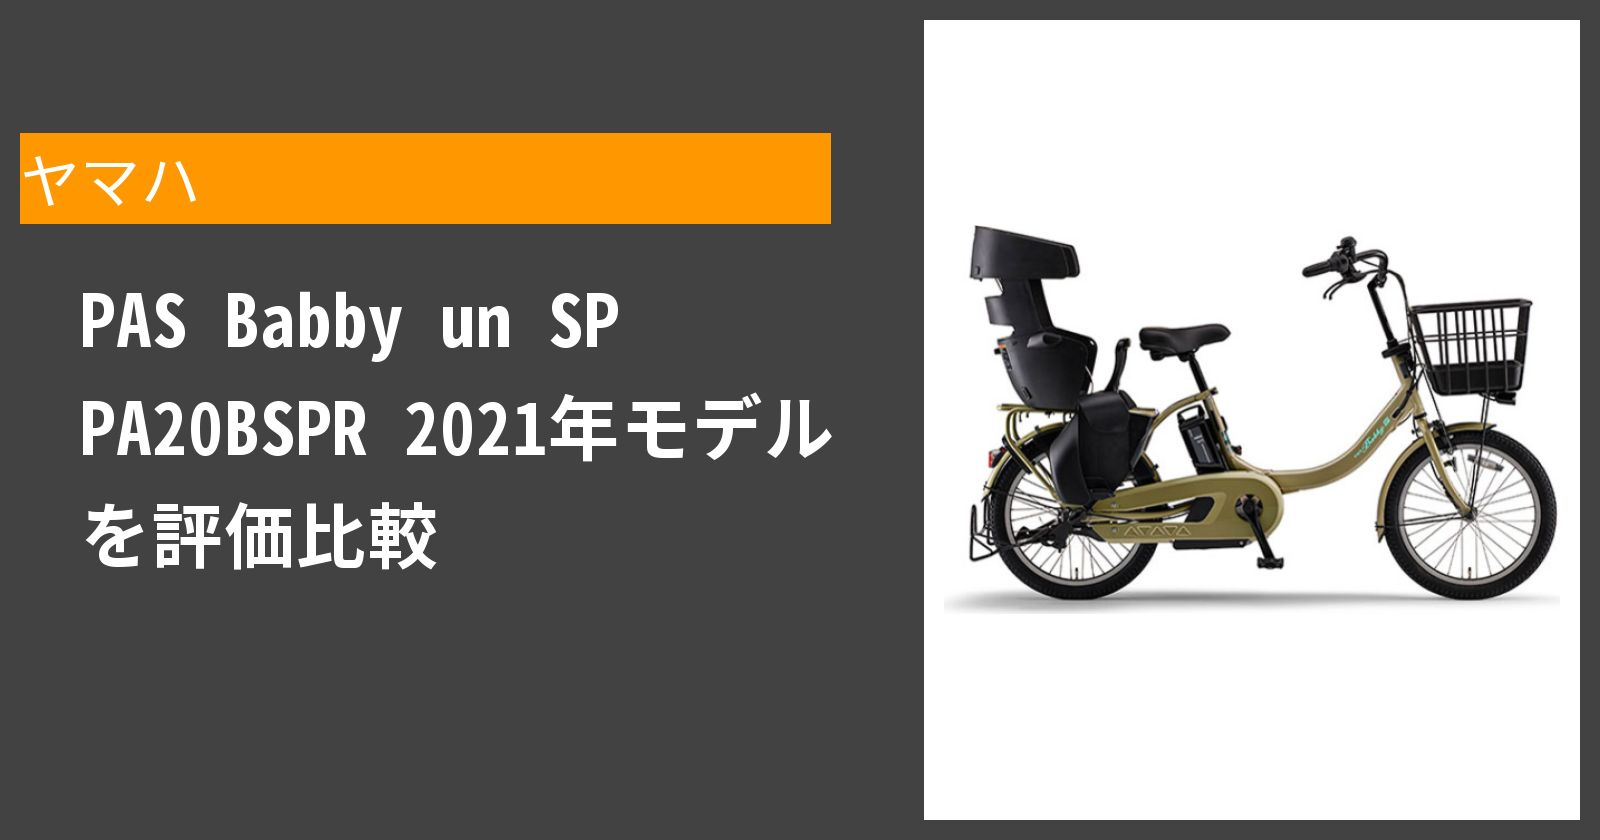 PAS Babby un SP PA20BSPR 2021年モデルを徹底評価